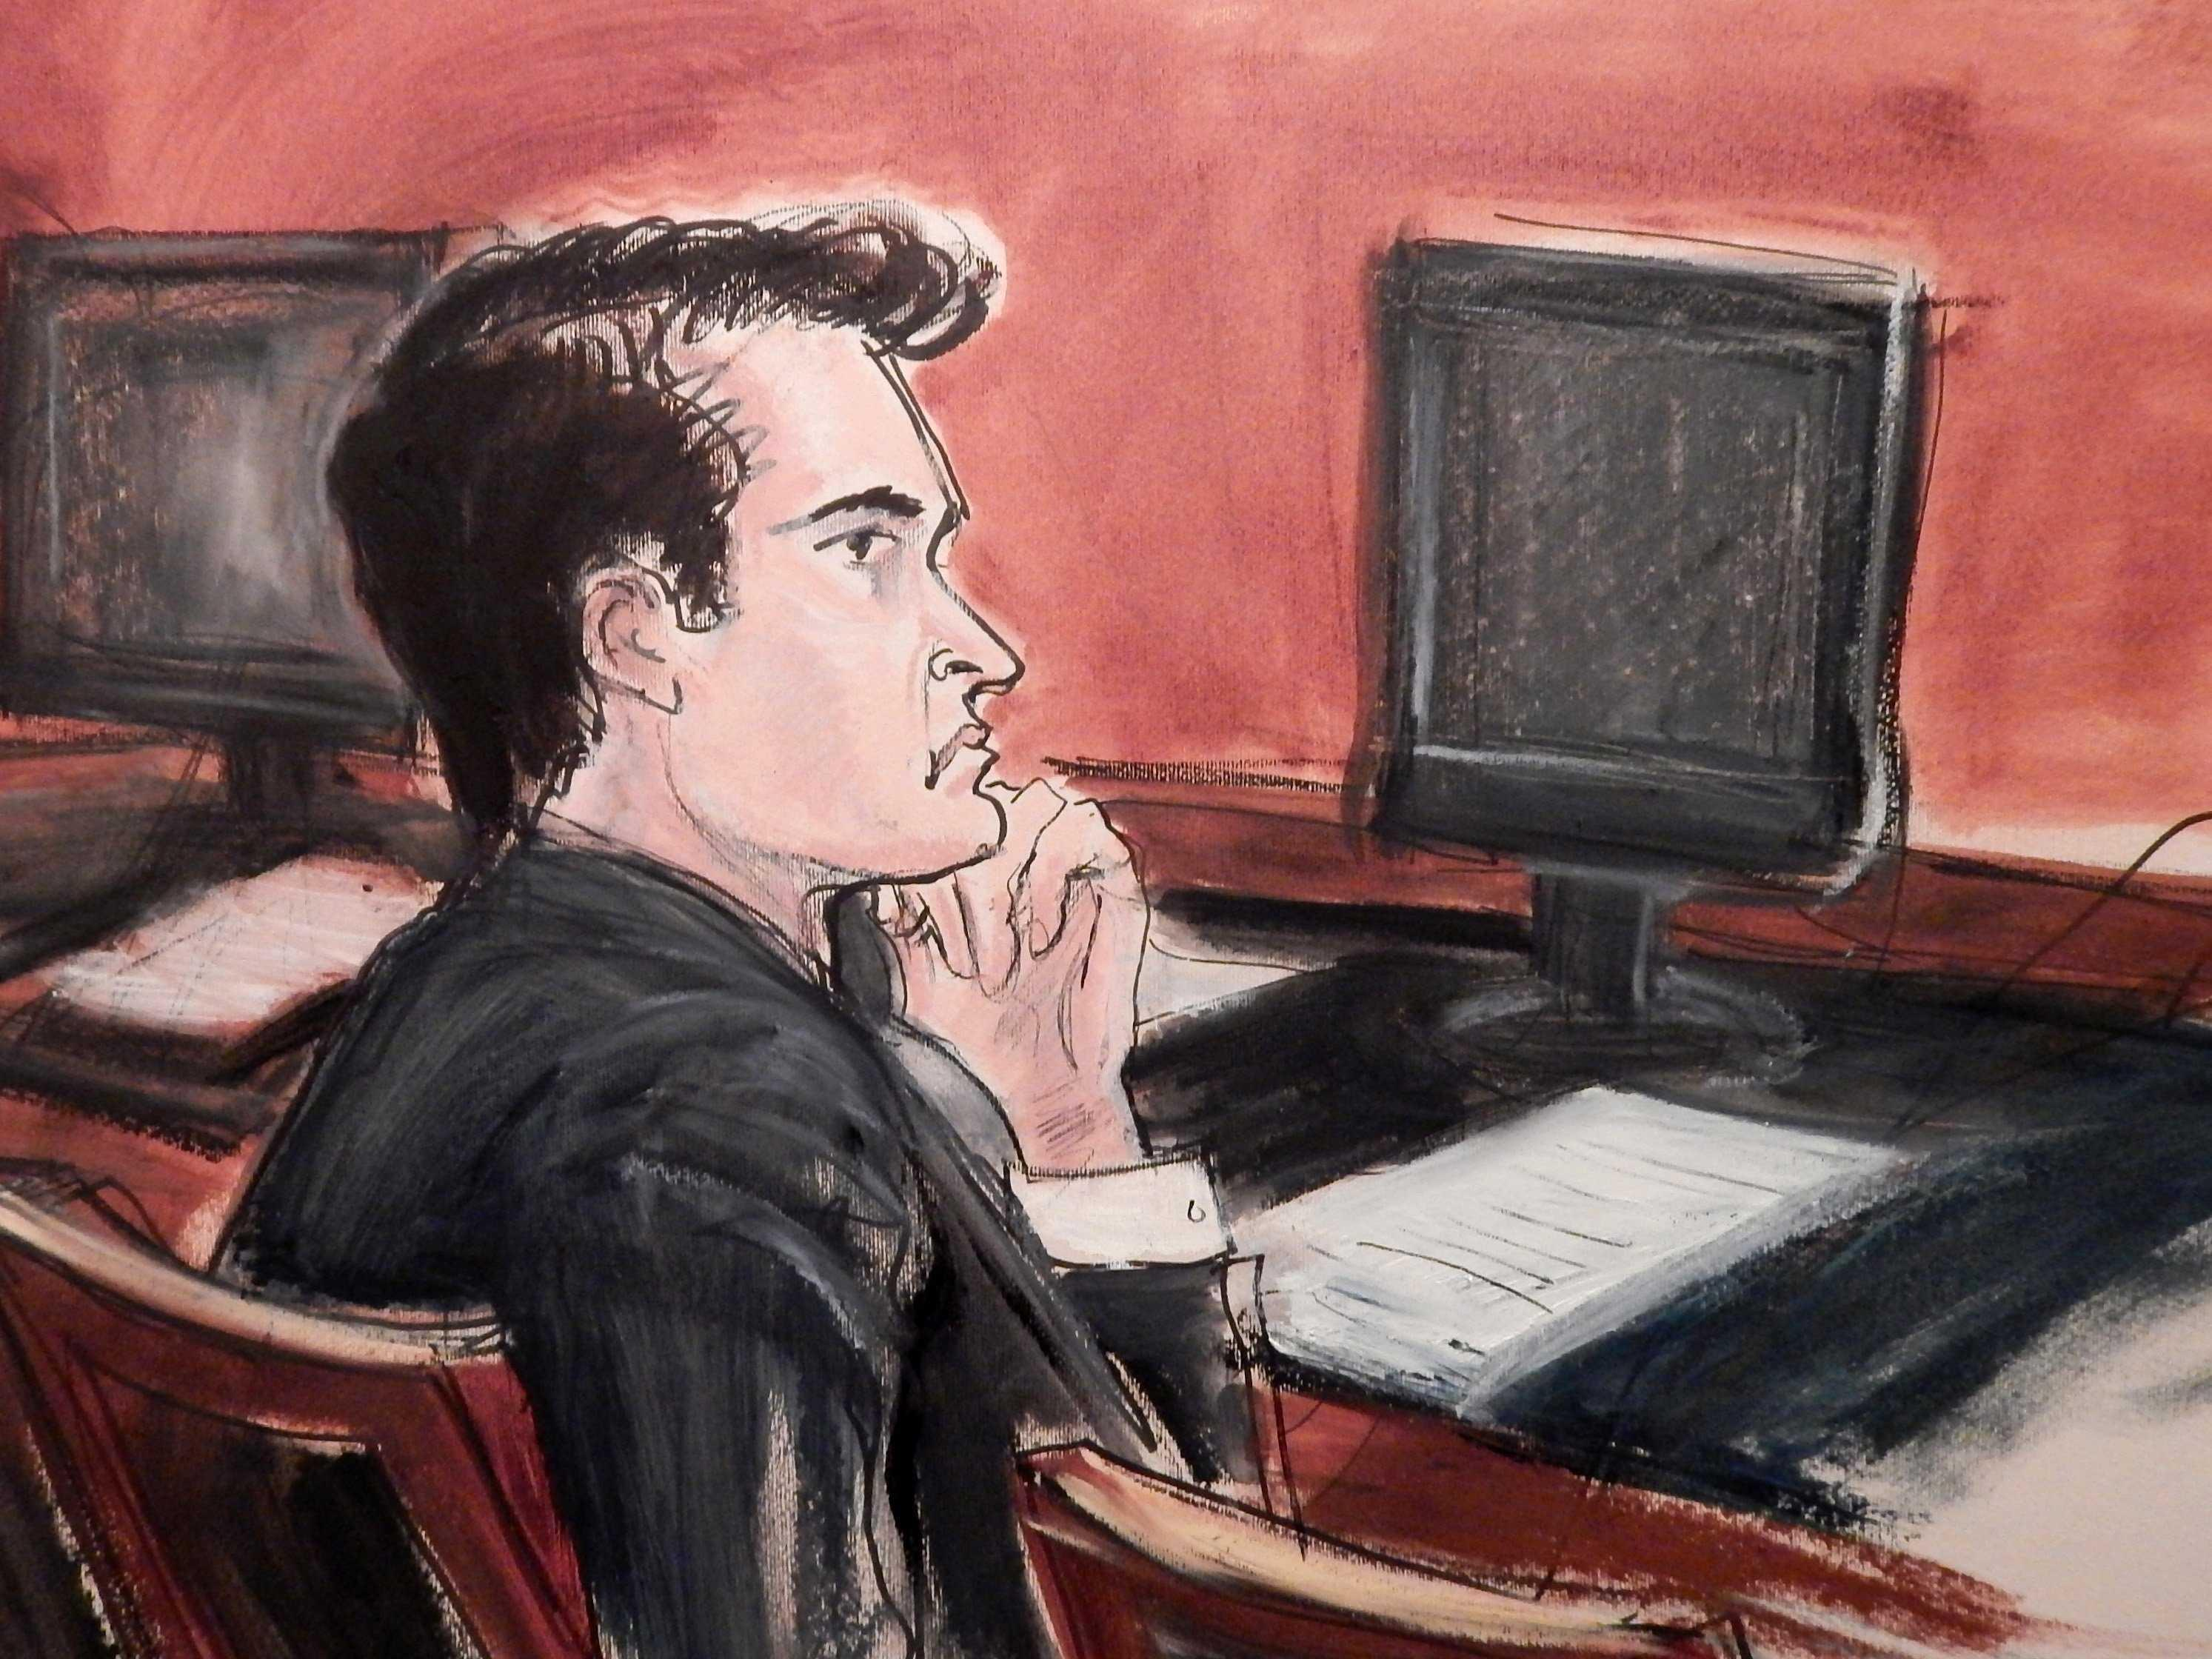 The 31-year-old convicted of running a huge criminal website asks to be spared a life sentence